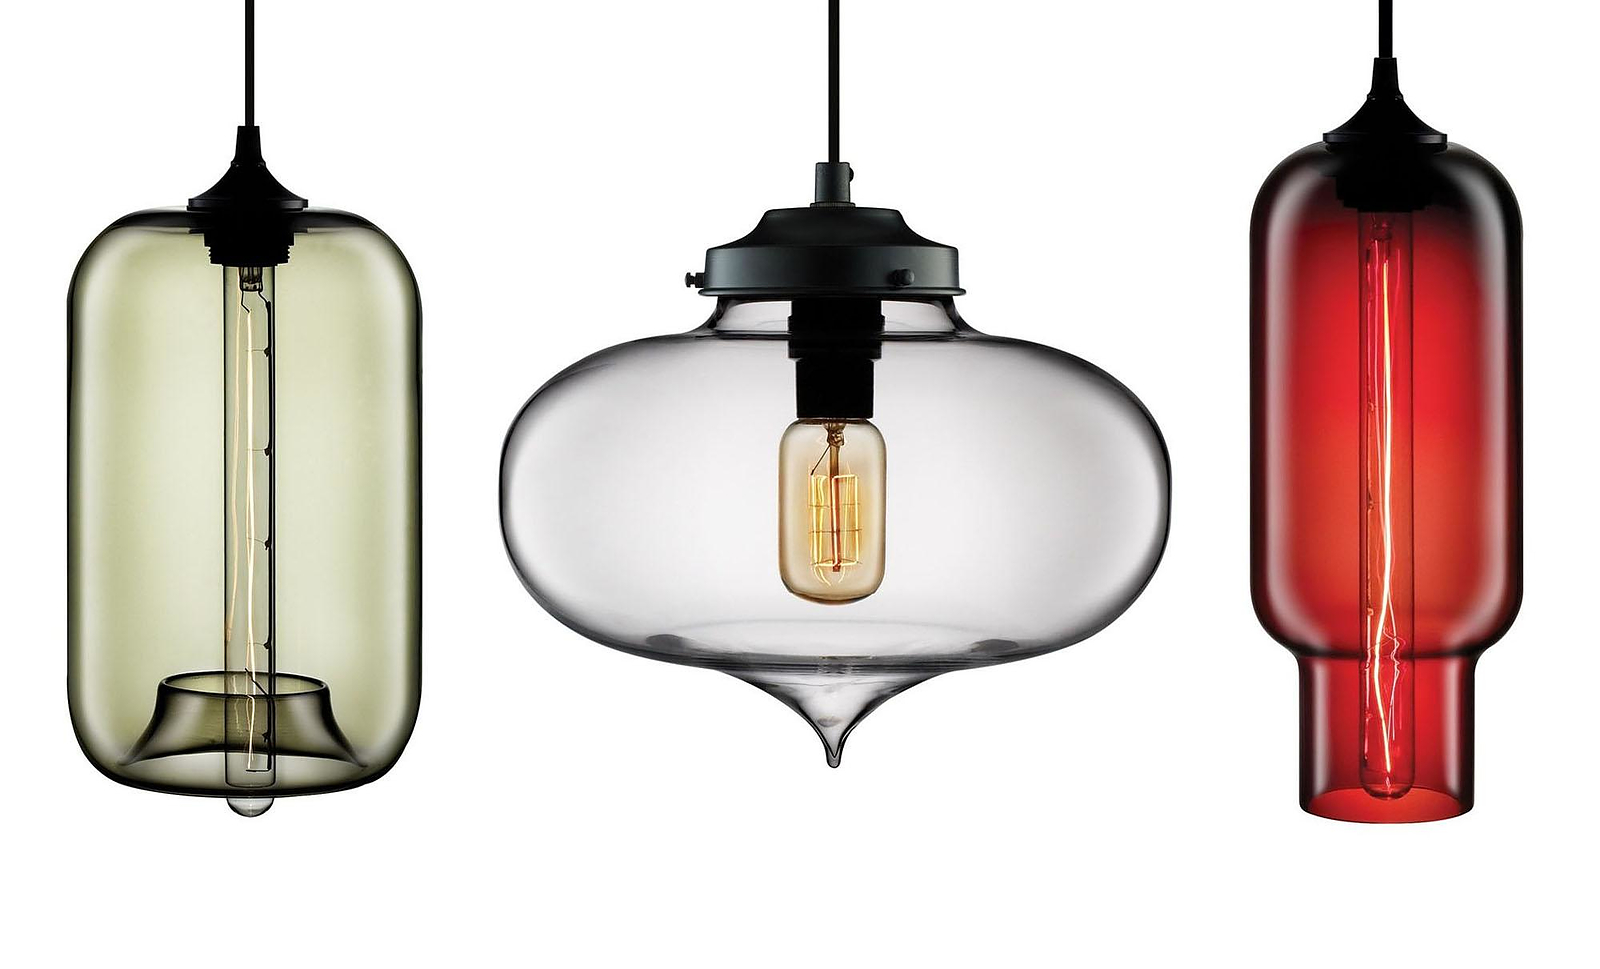 Stunning pendant lights by niche modern design is this niche modern lamps mozeypictures Images